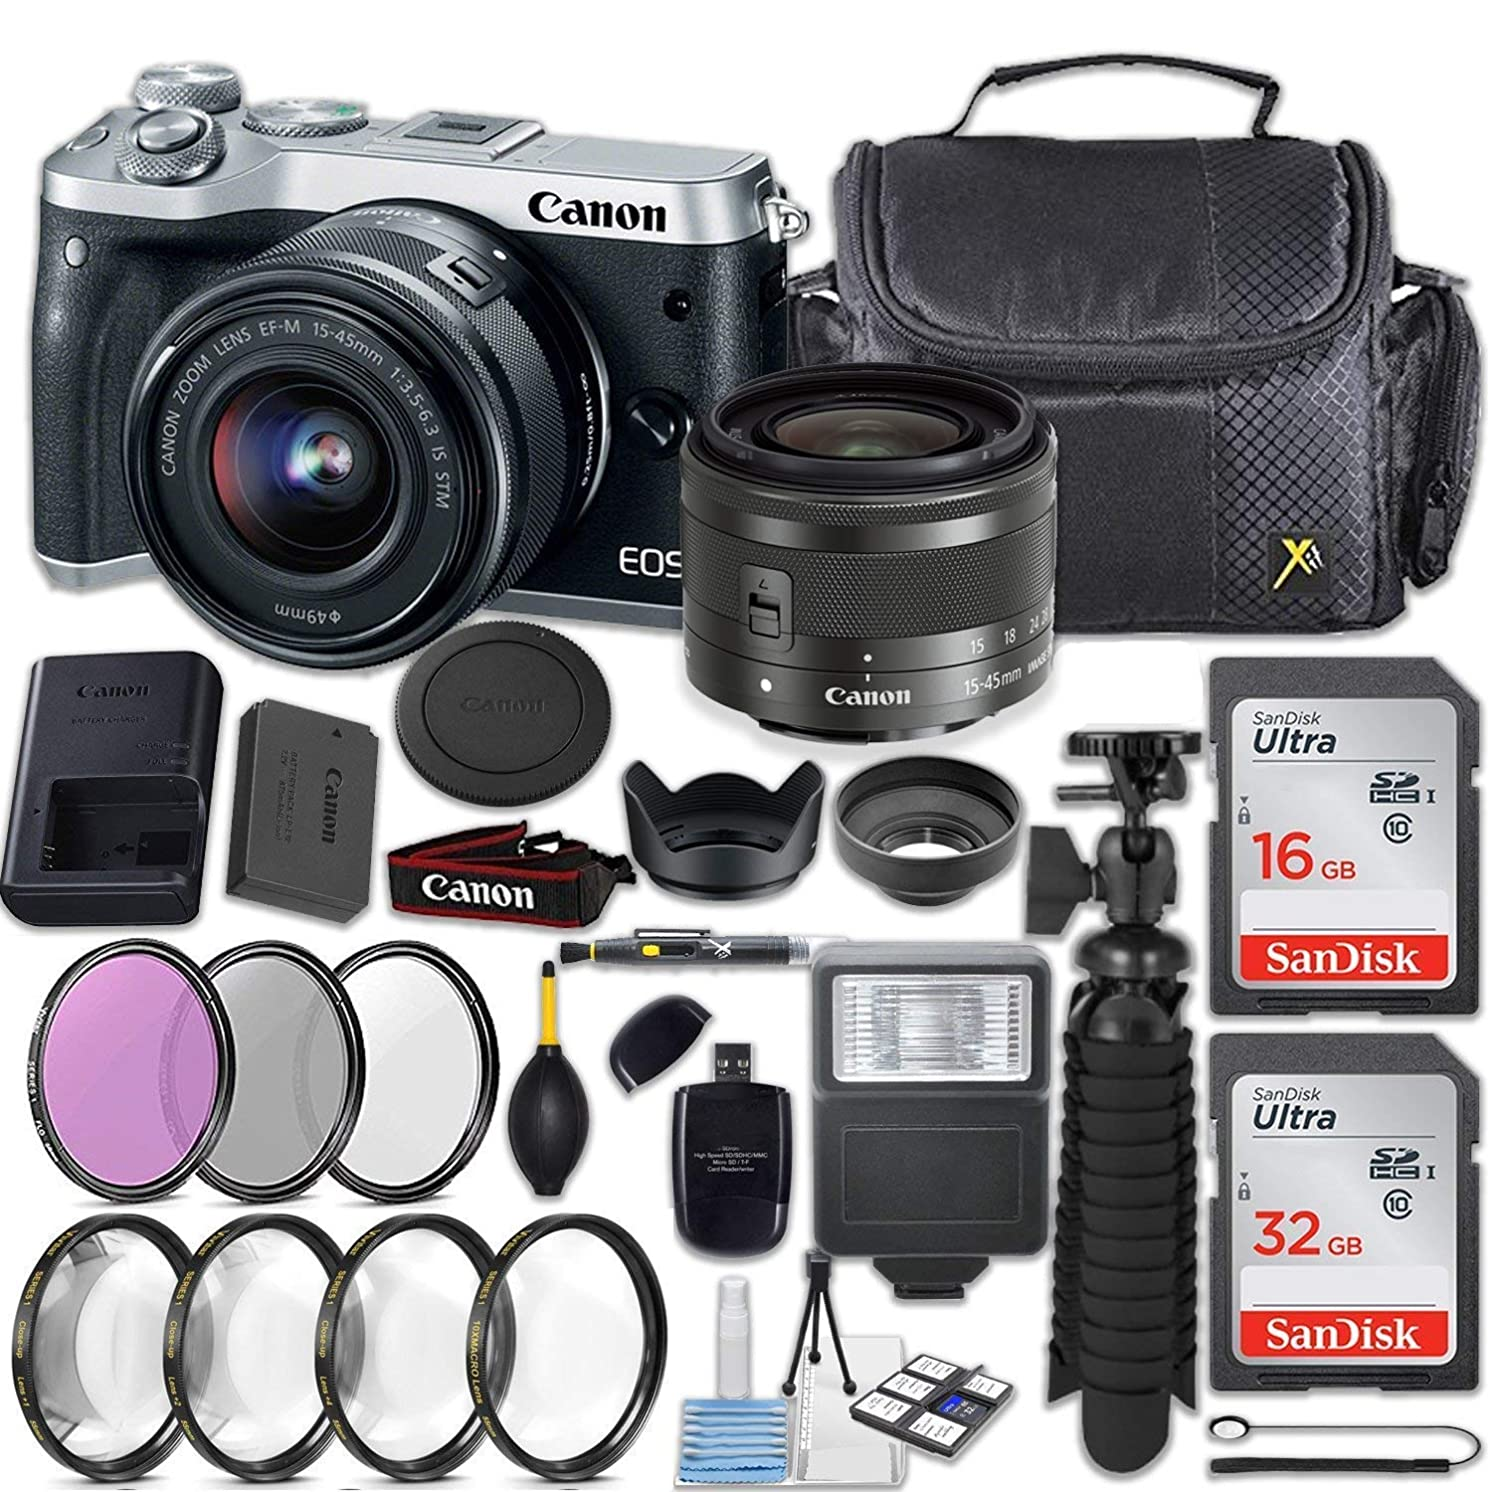 Canon EOS M6 24.2MP Mirrorless Digital Camera (Silver), EF-M 15-45mm f/3.5-6.3 is STM Lens (Silver) + 48GB + Filters & Macros + Spider Tripod + Slave Flash and Accessory Kit